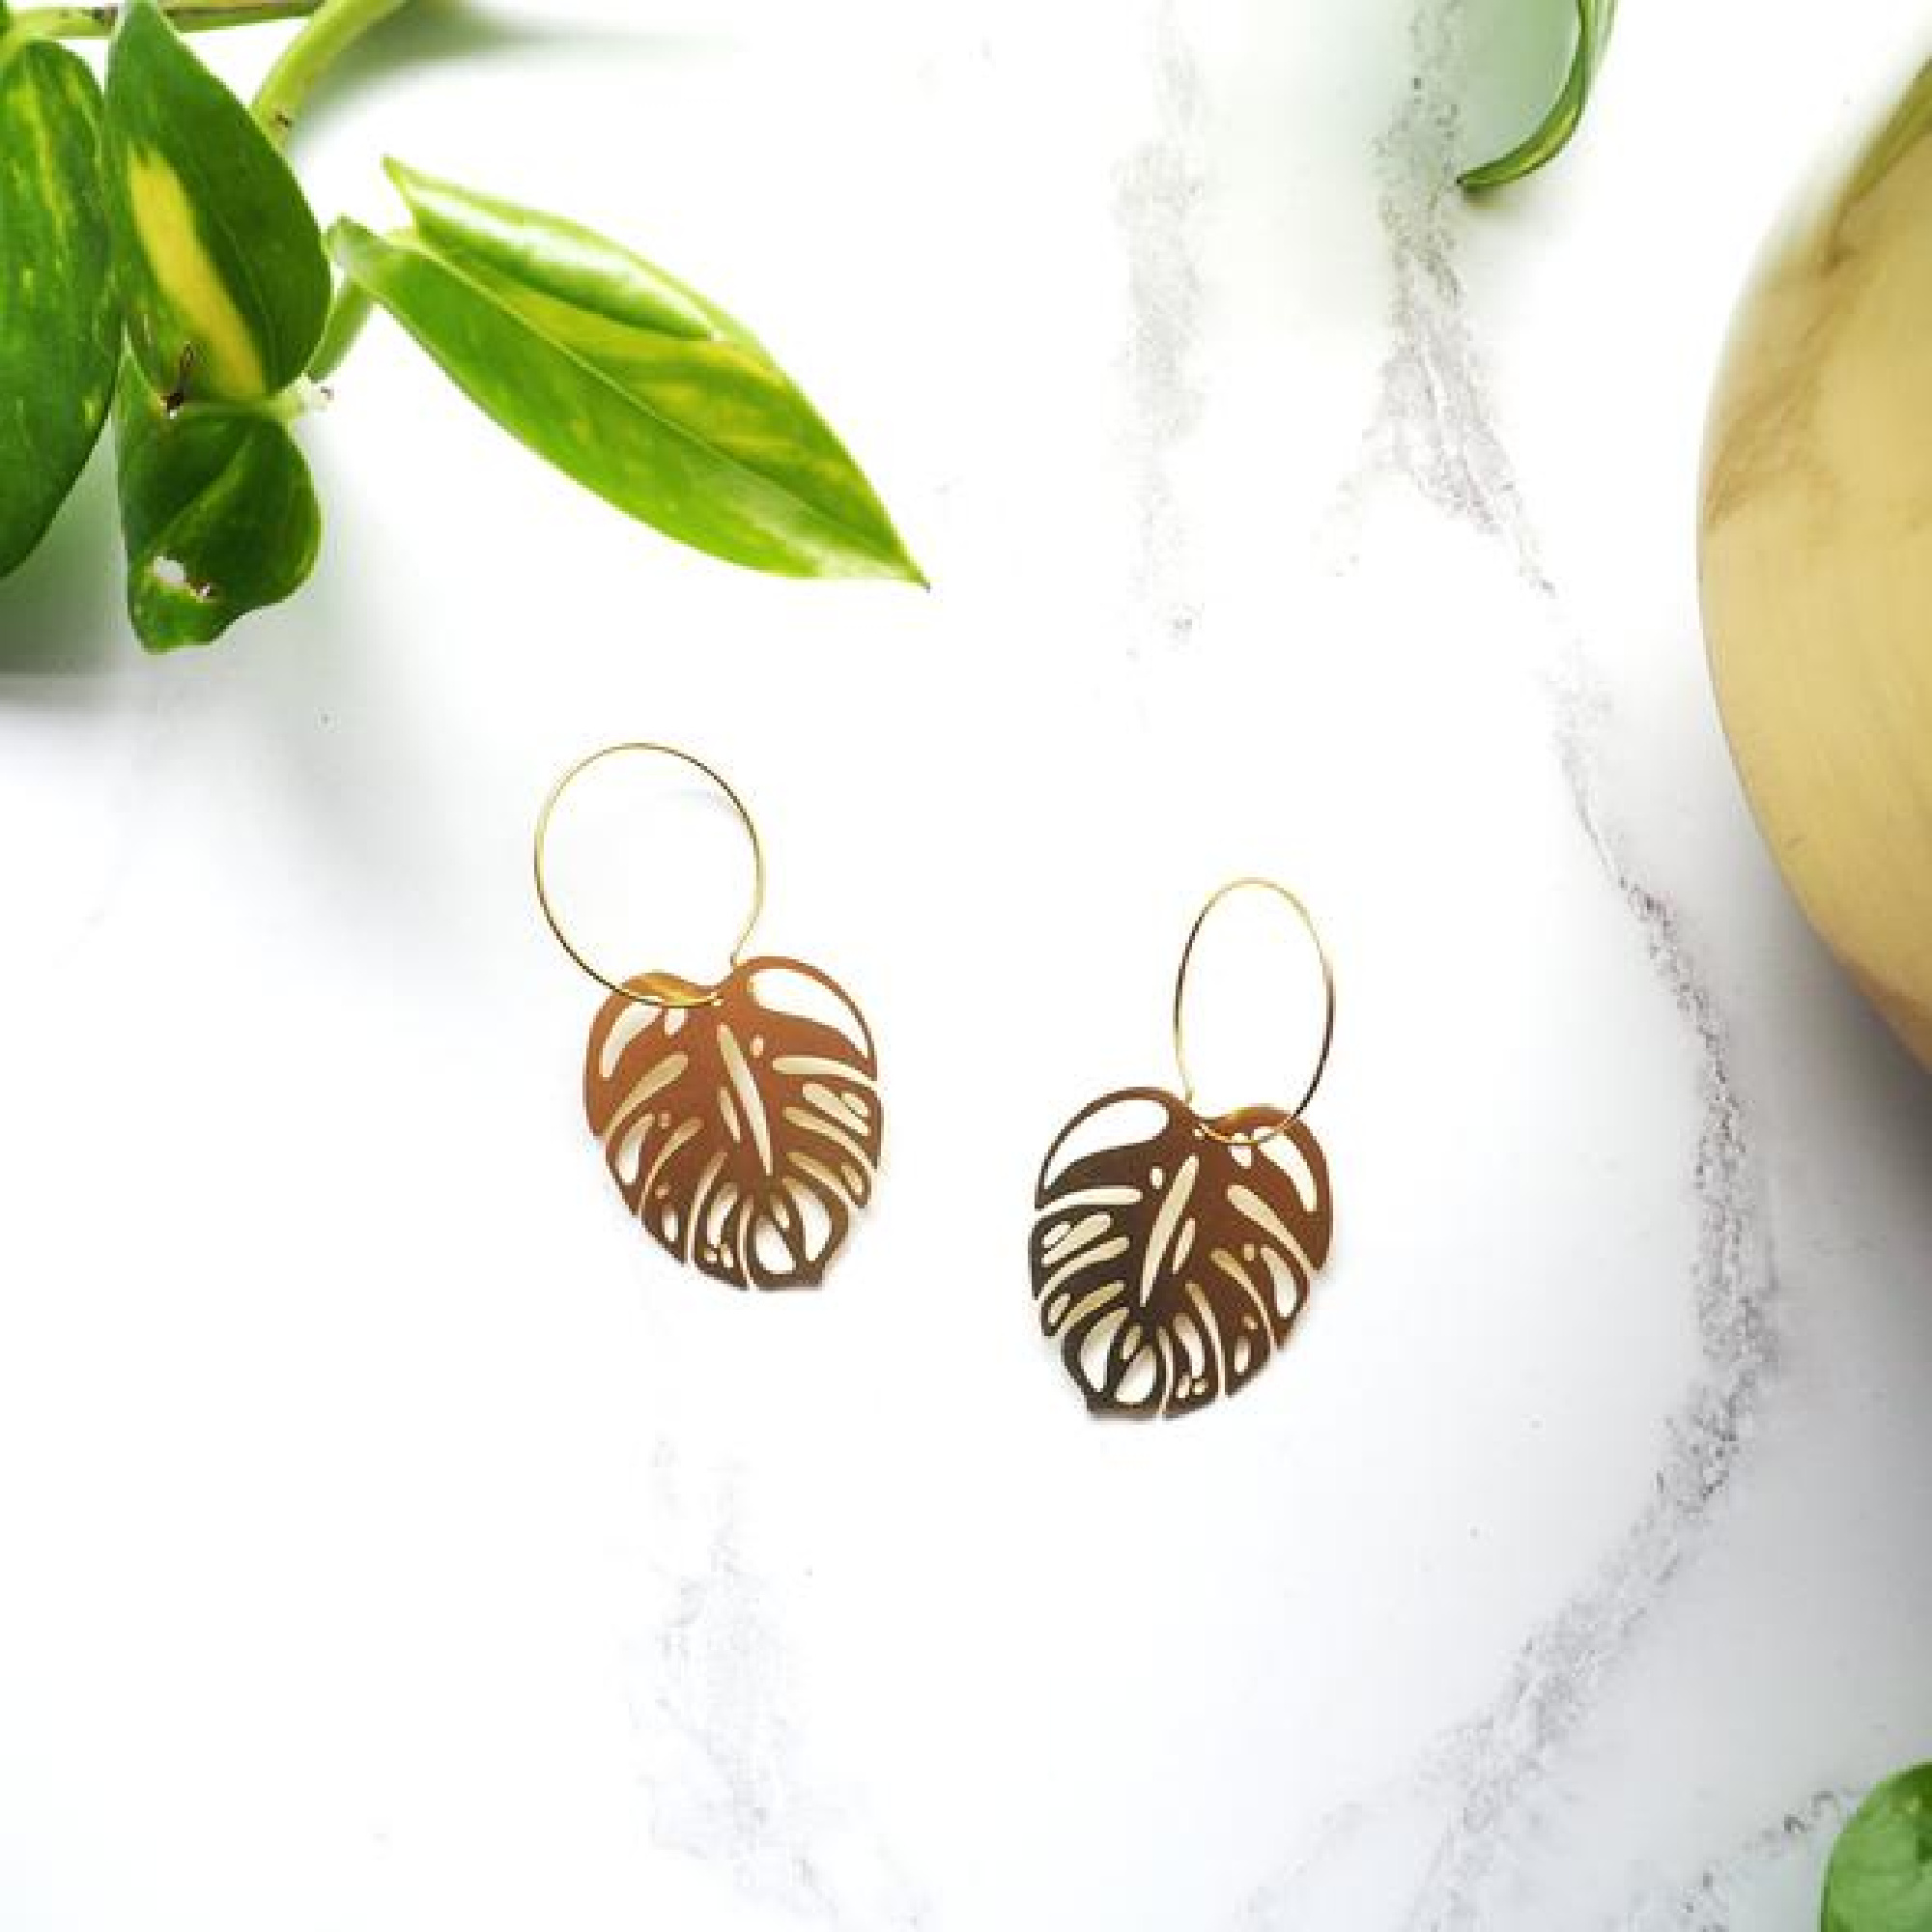 Monstera Earrings by Mica Peet